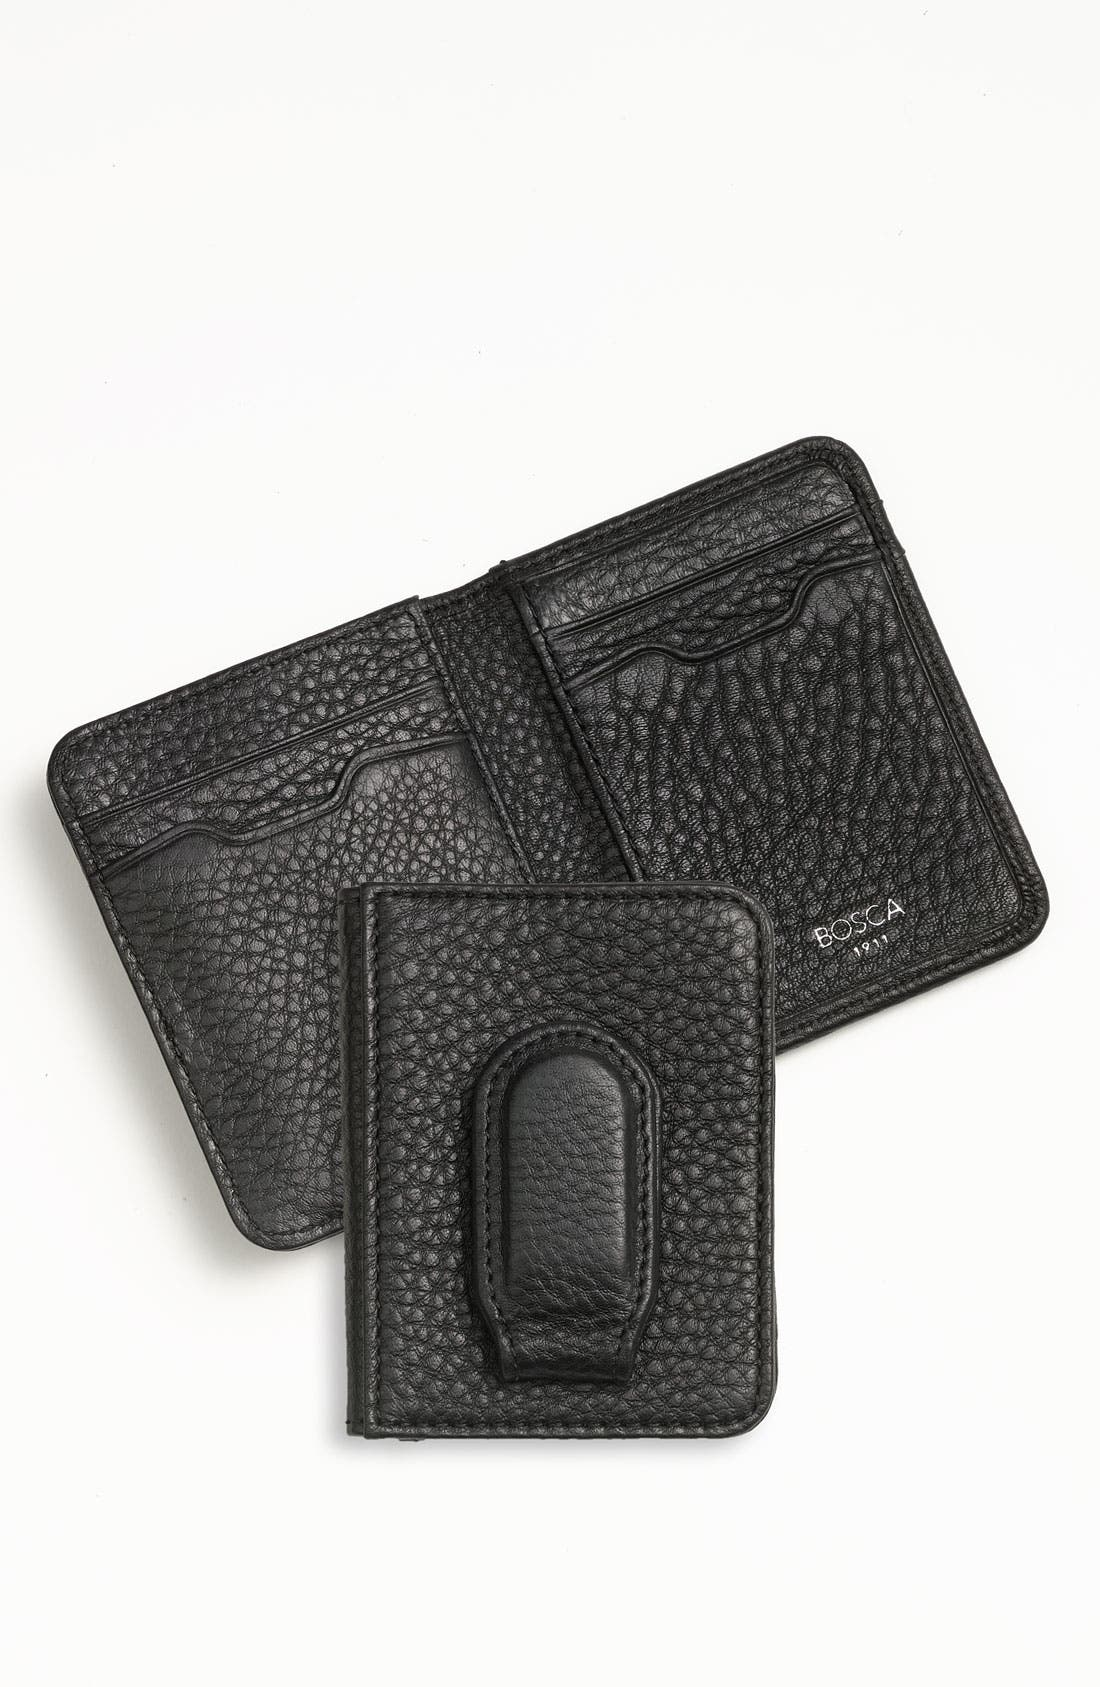 Main Image - Bosca Front Pocket Wallet